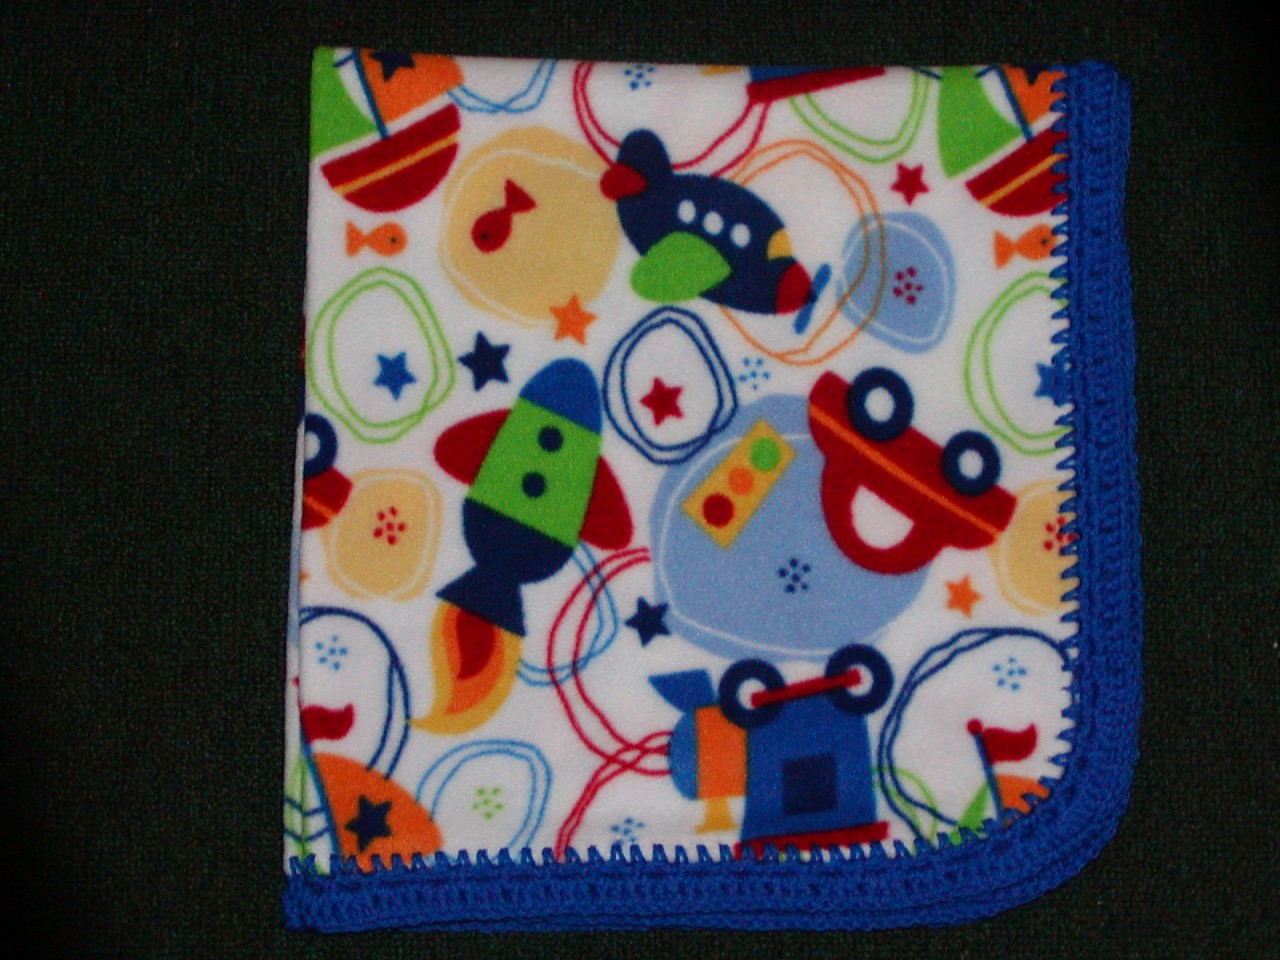 CRADLE-RECEIVING-BLANKET-SCATTERED-BOY-TOYS-RED-or-BLUE